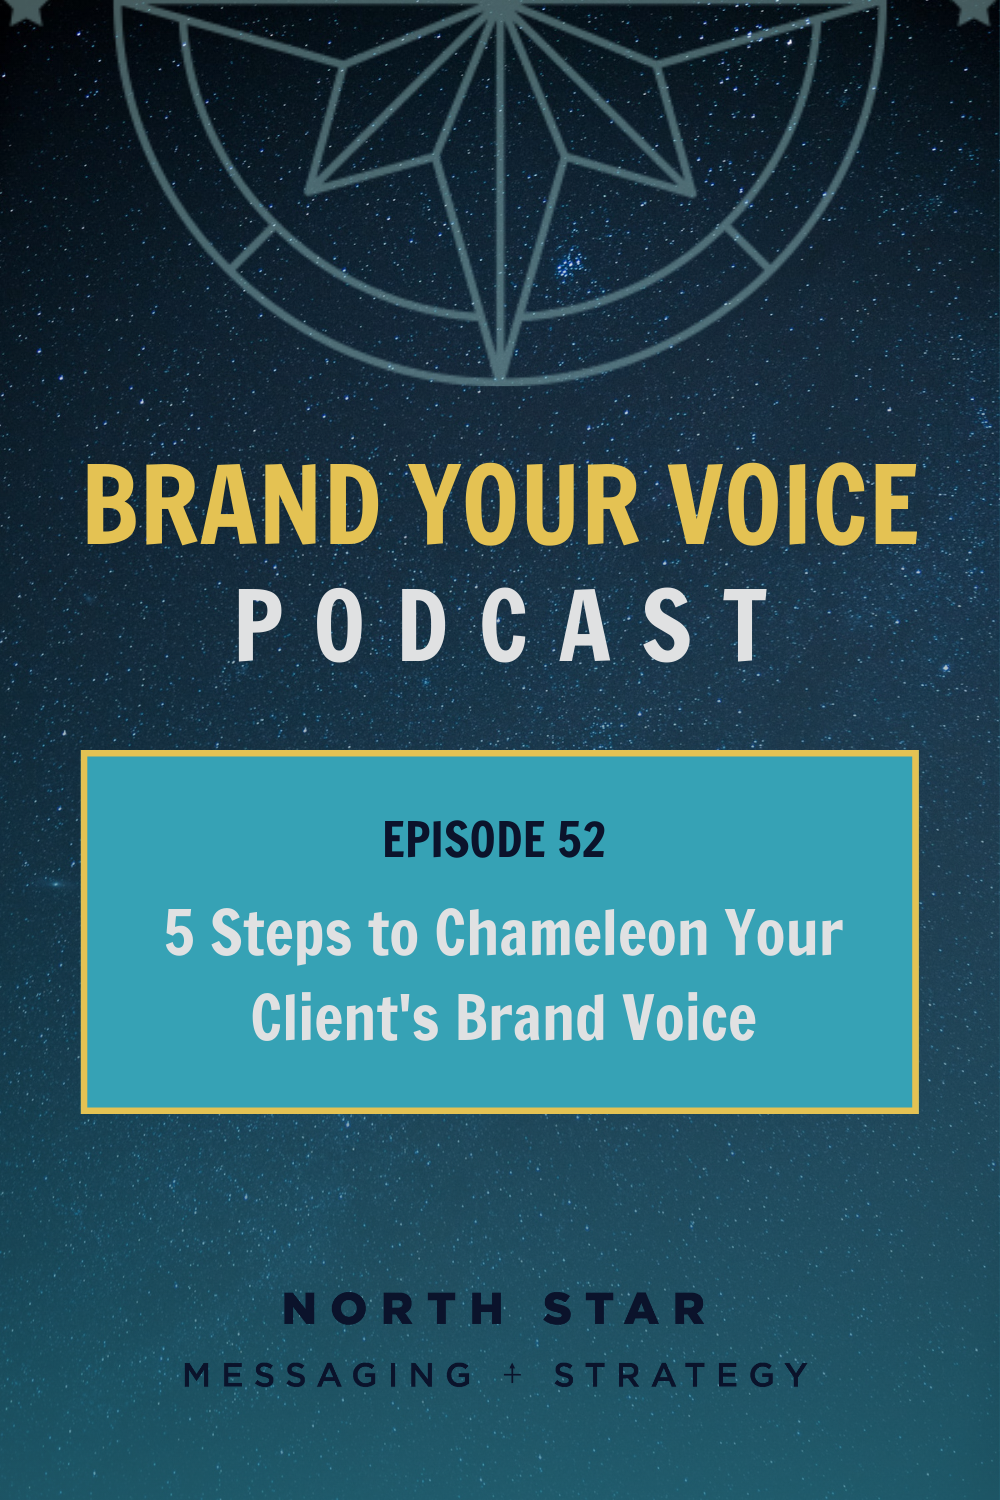 EPISODE 52: 5 Steps to Chameleon Your Client's Brand Voice